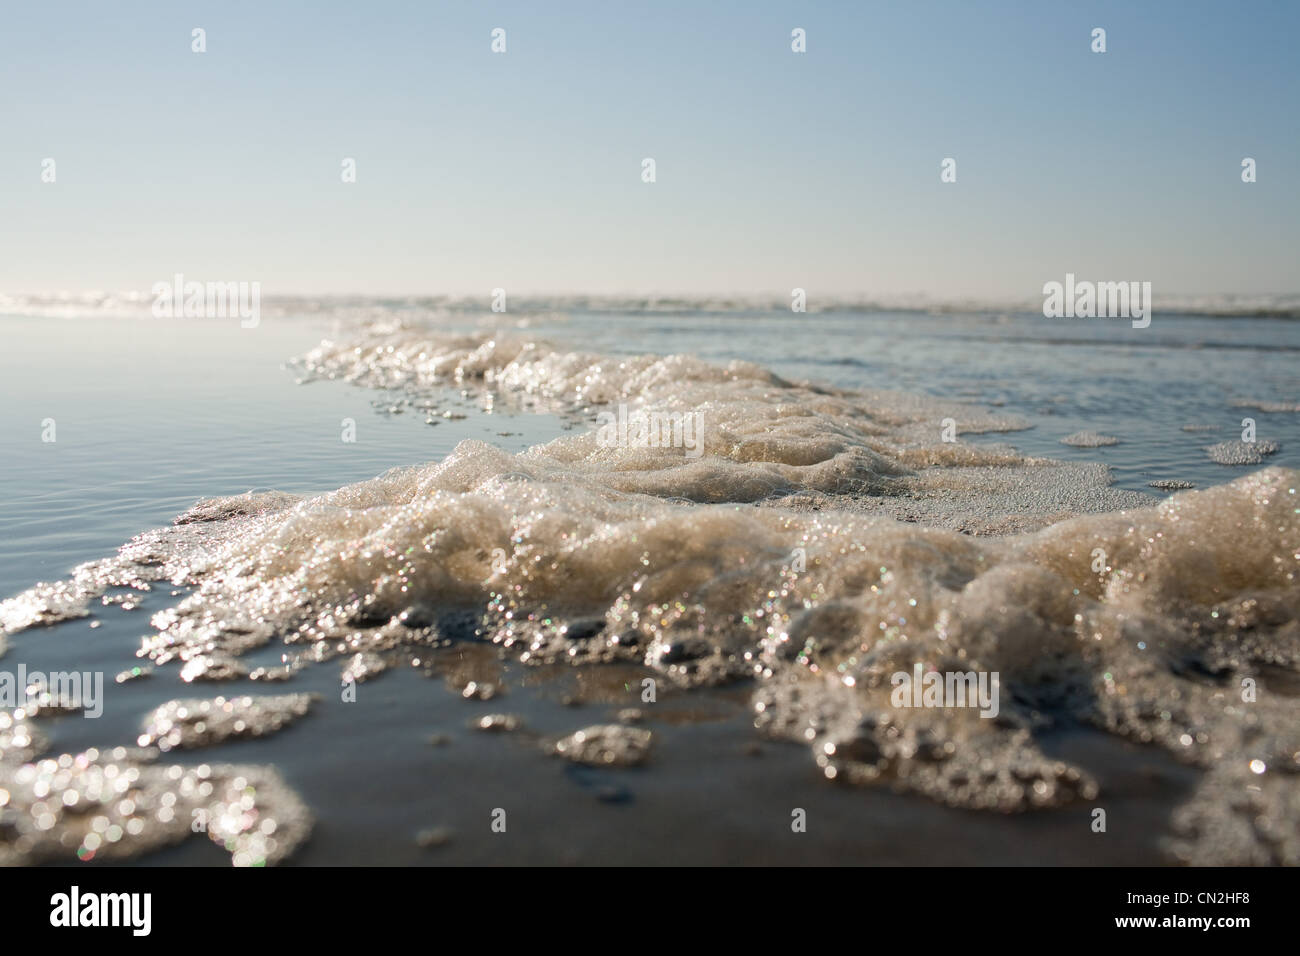 Sea surf at water's edge - Stock Image